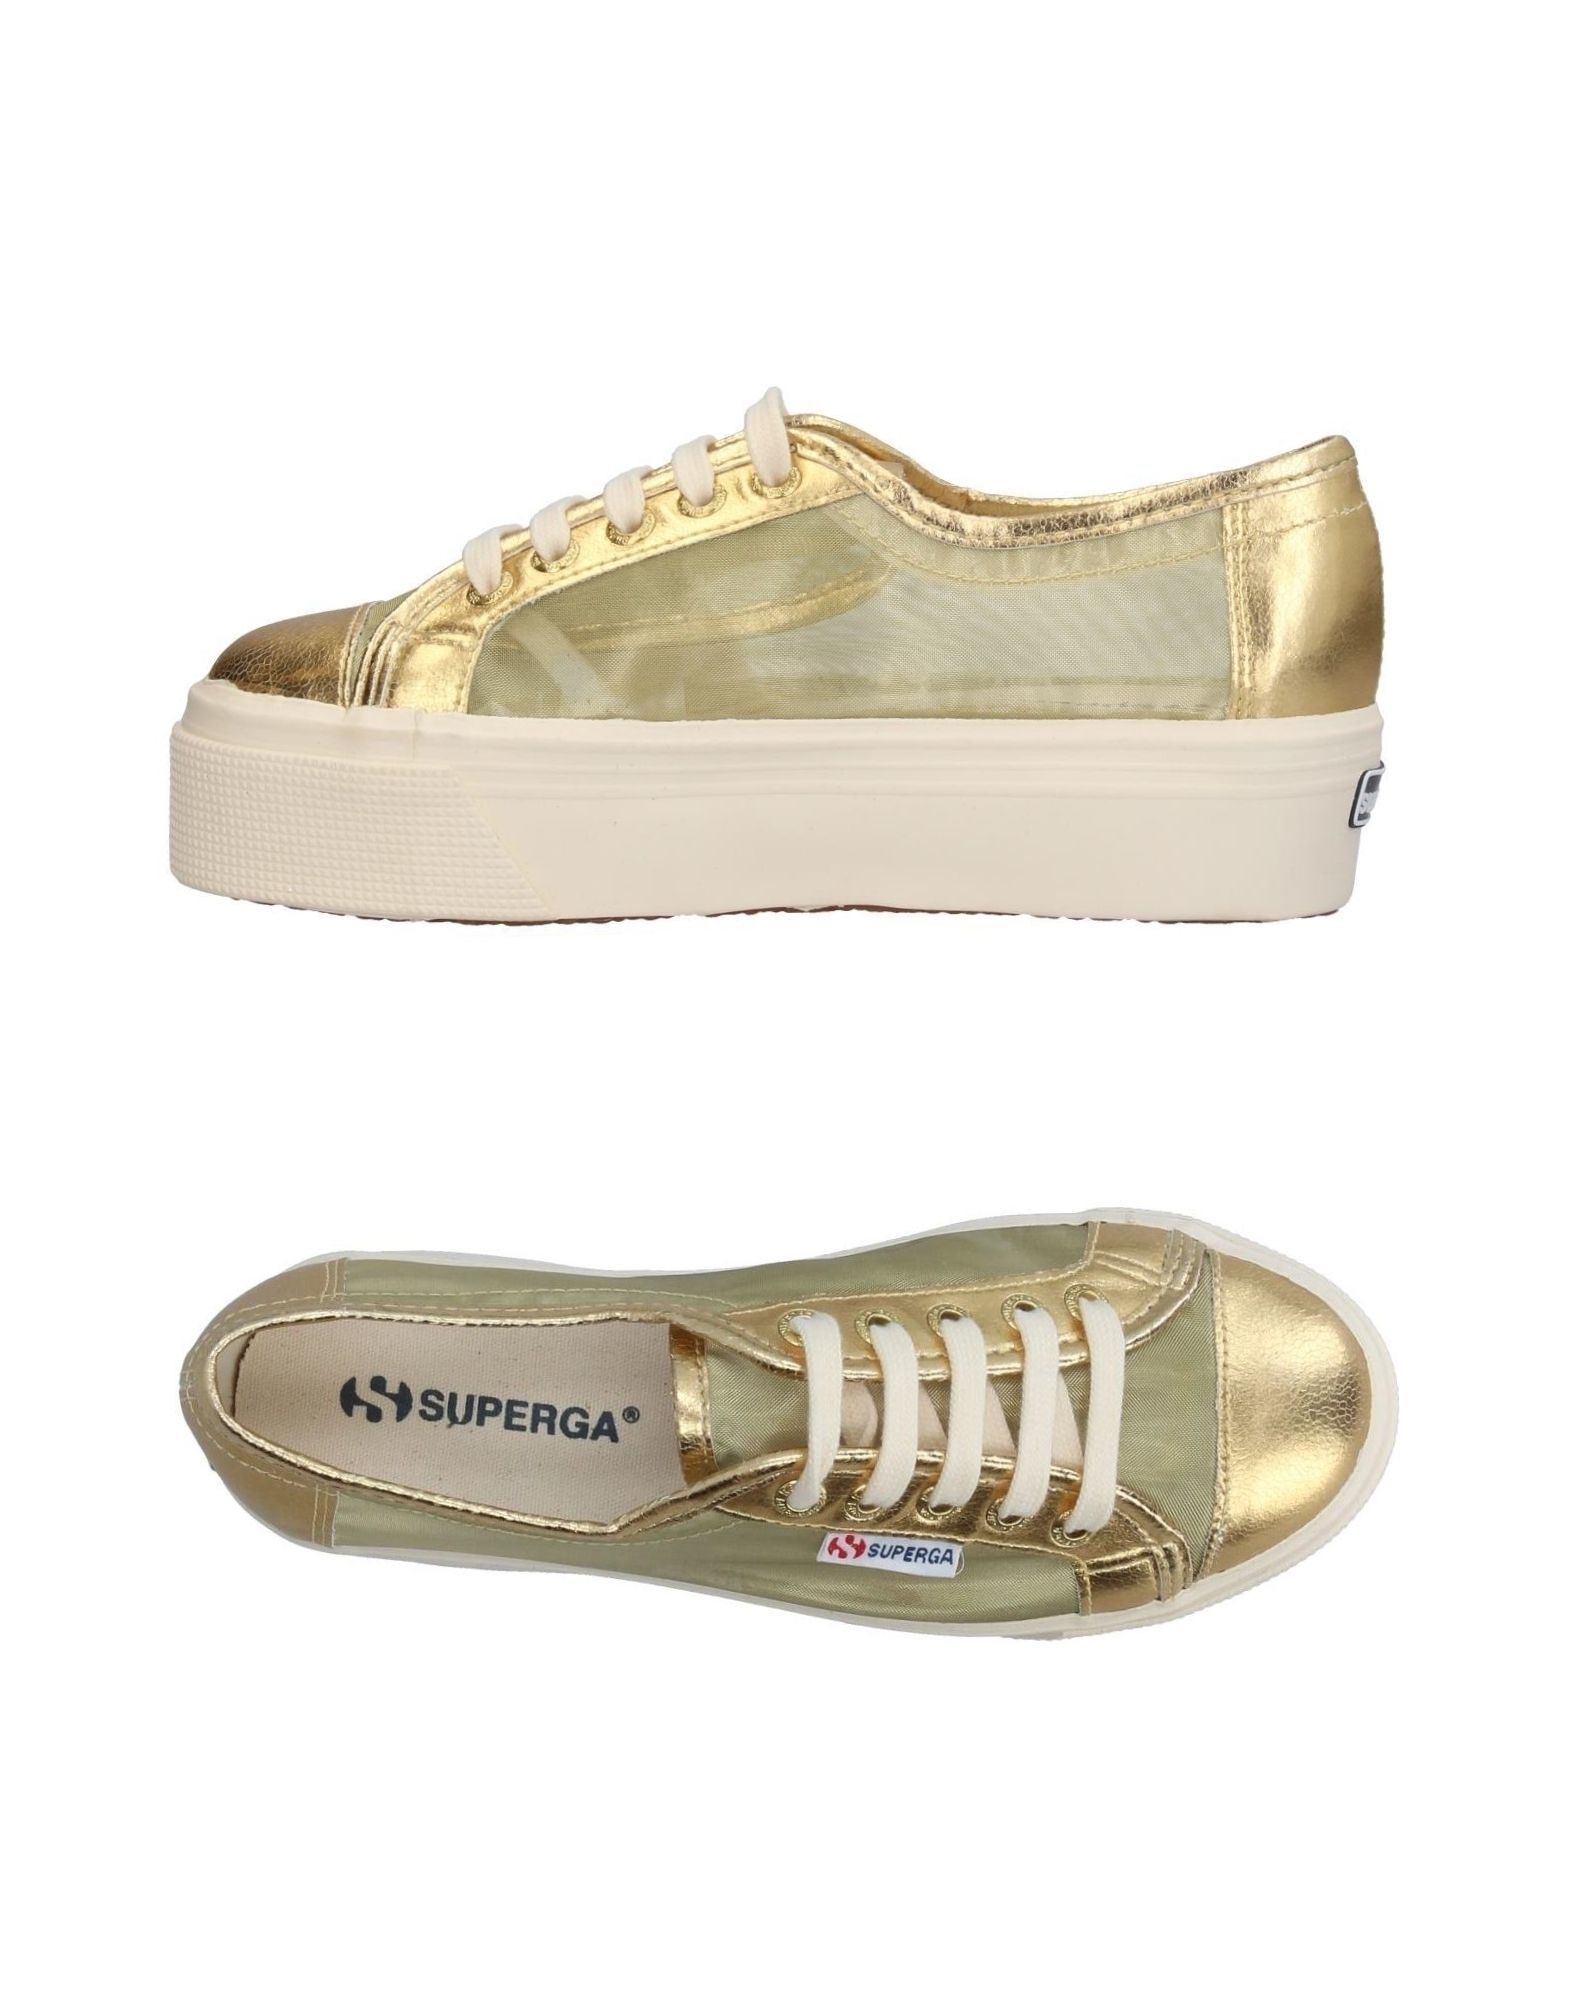 Sneakers Superga® Femme - Sneakers Superga® sur